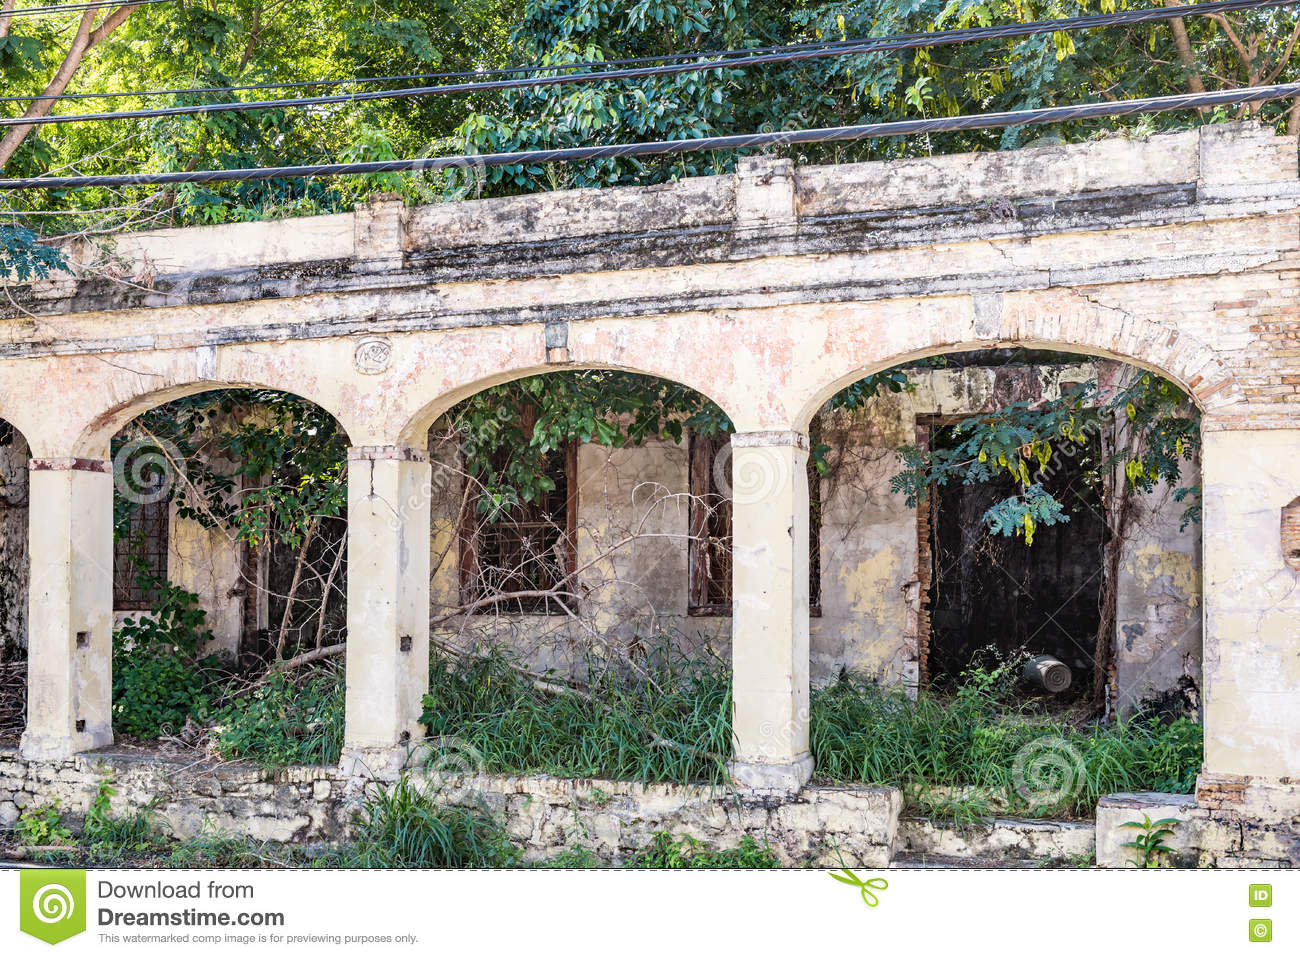 Remains of abandoned building